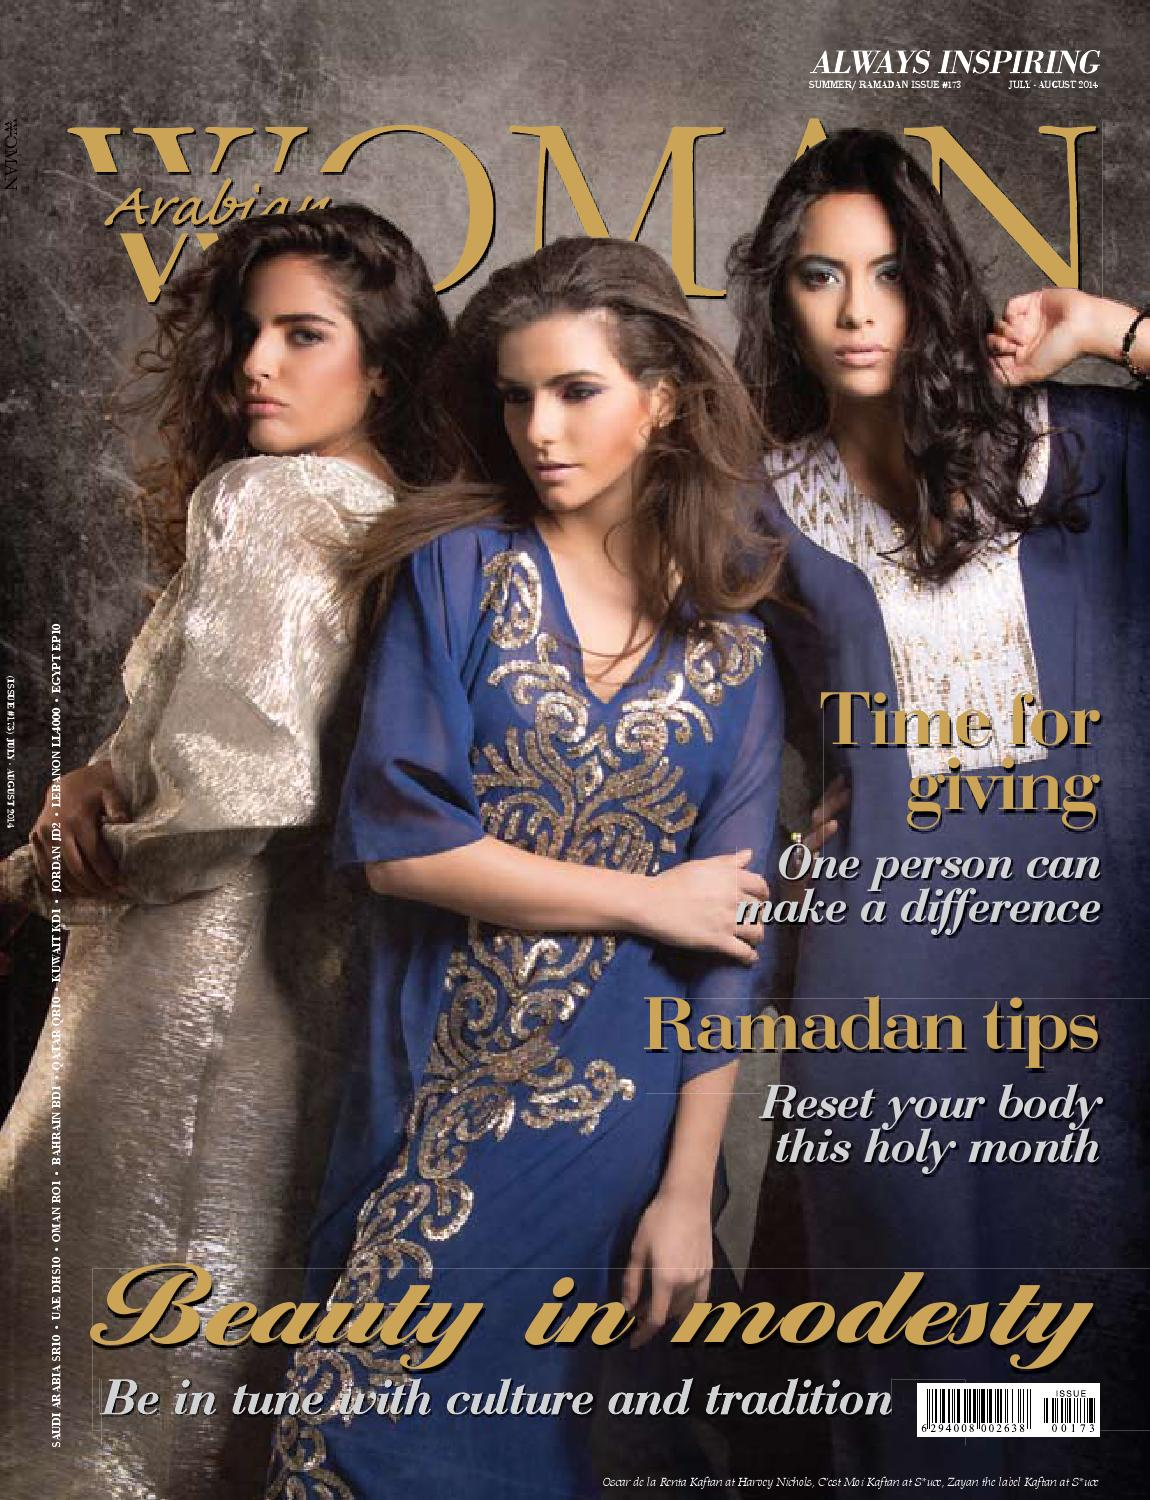 Arabian Woman July/August 2014 Issue by Arabian Woman - issuu